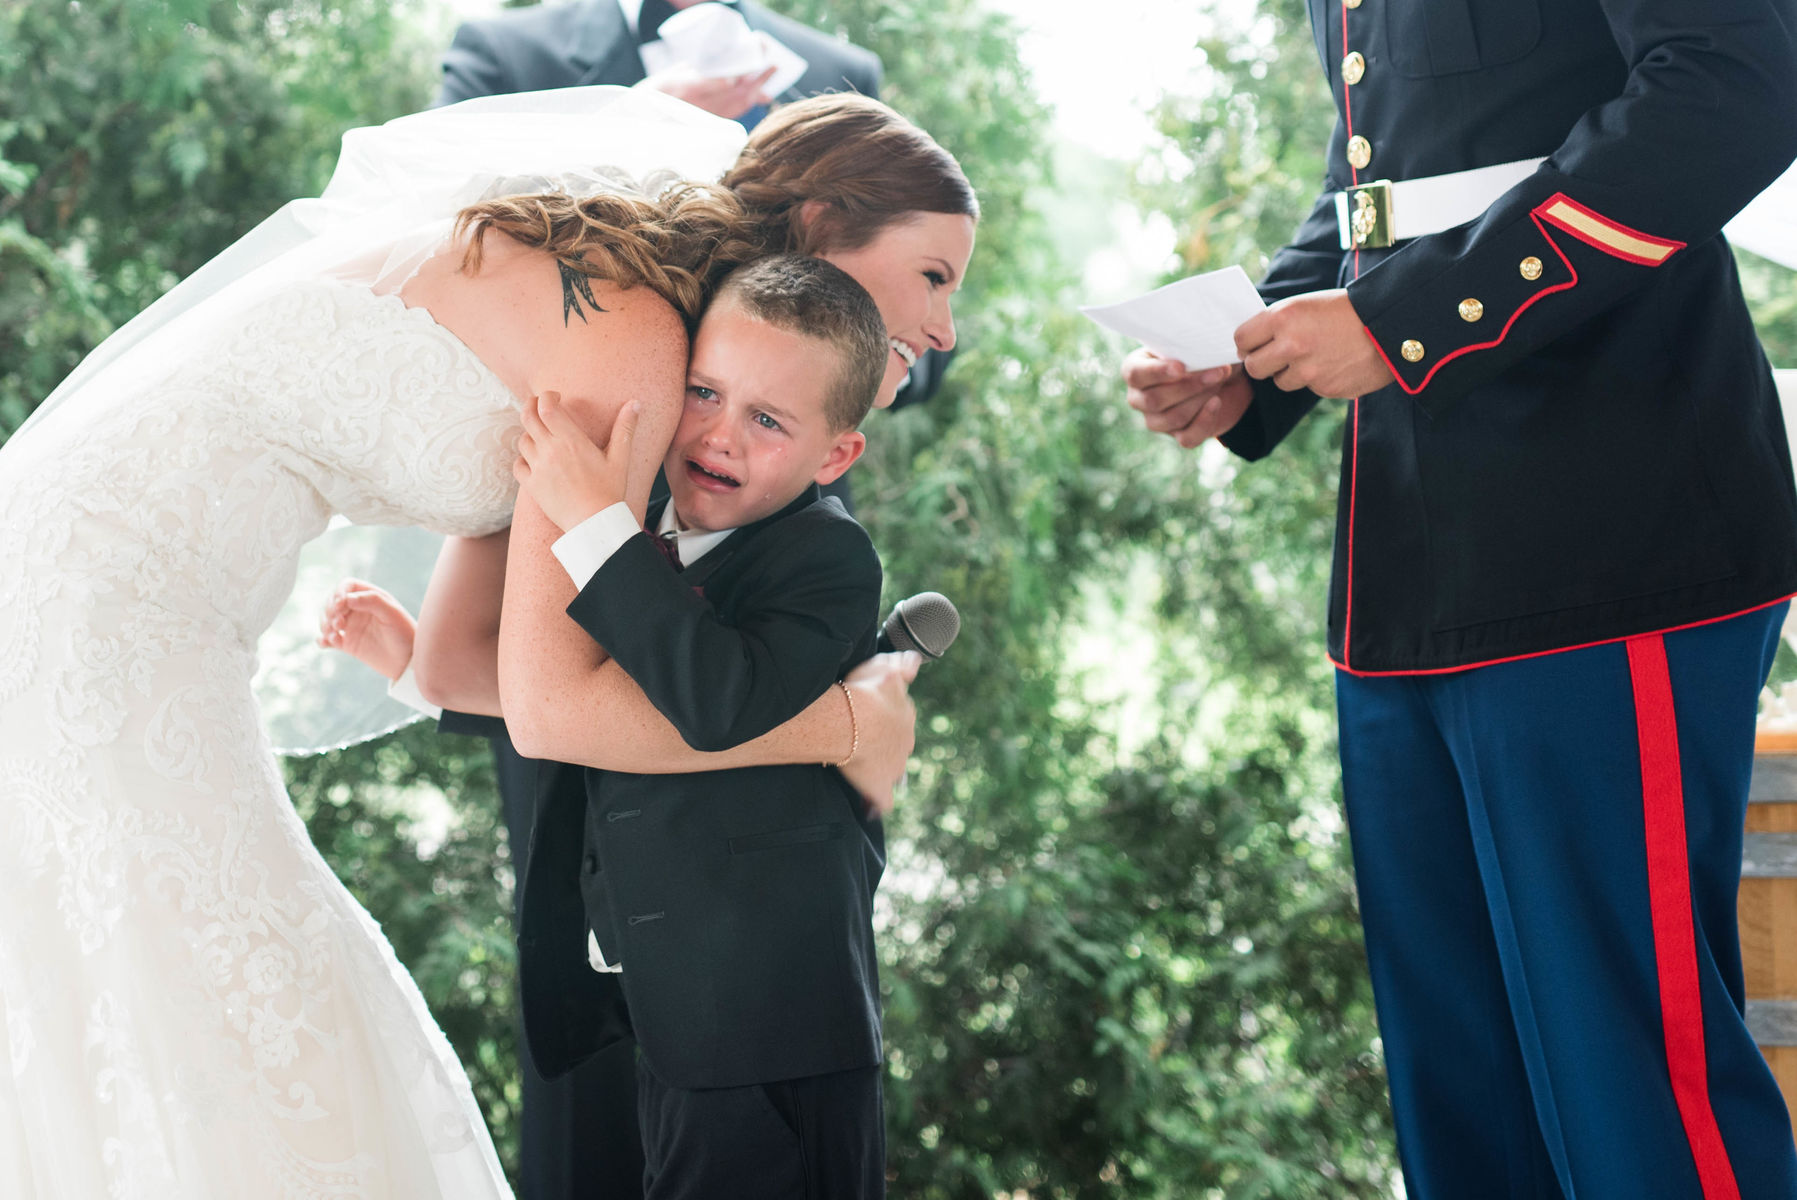 step-son overcome by emotion at wedding